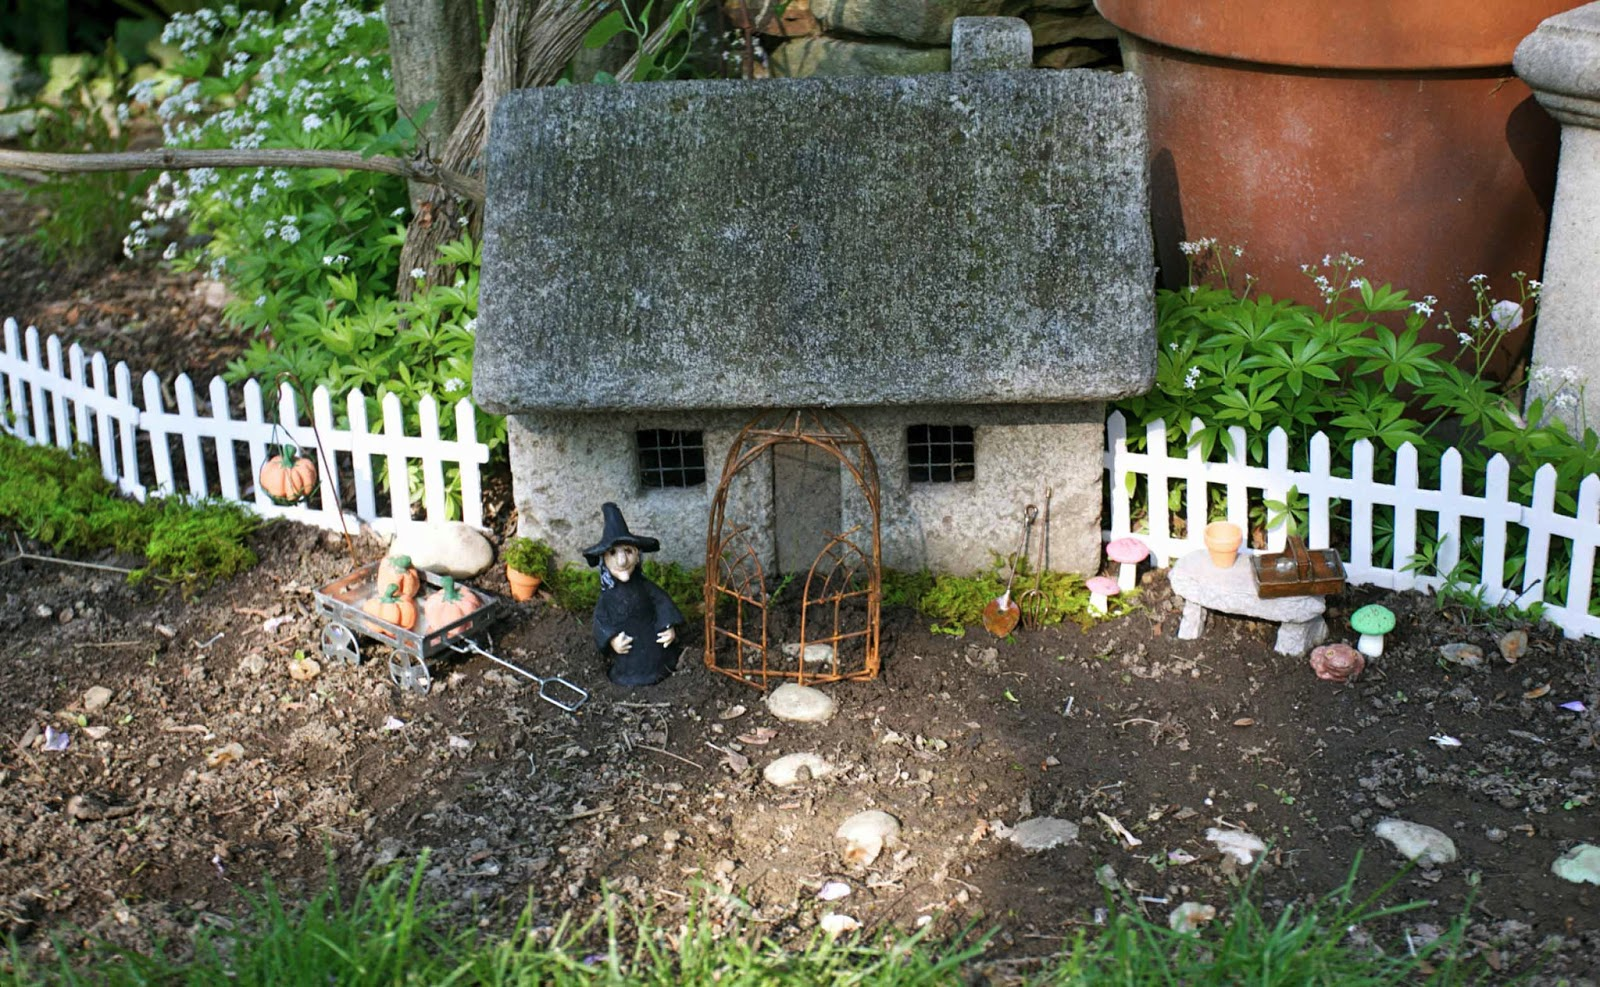 The Witches Gardens